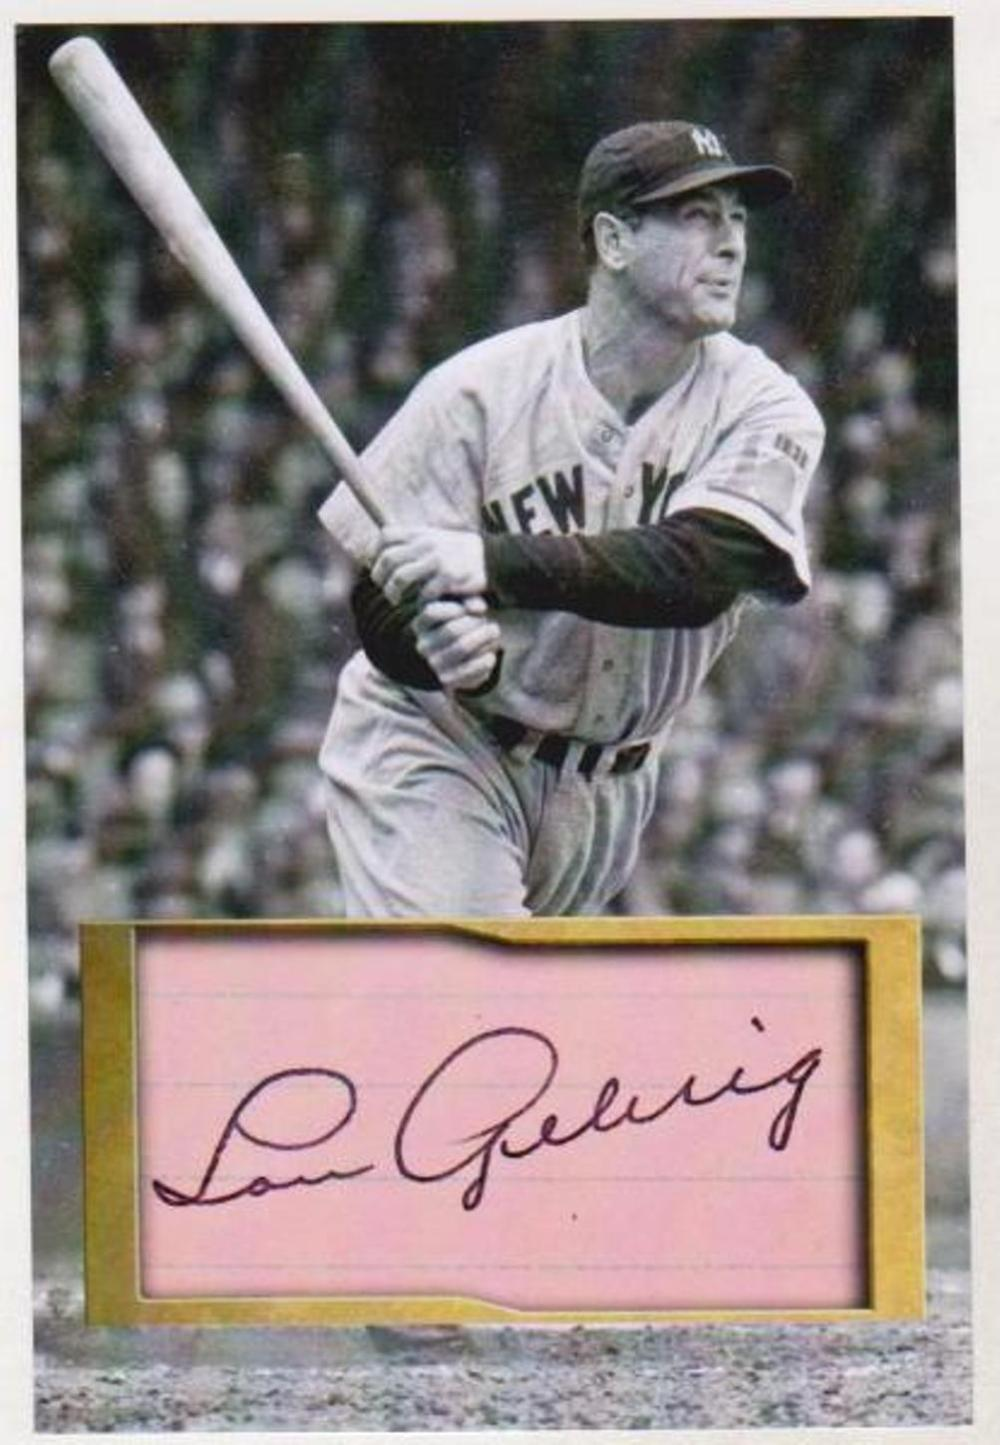 Lou Gehrig 4x6 Photo w/ Facsimile Signature - Nice For Framing!